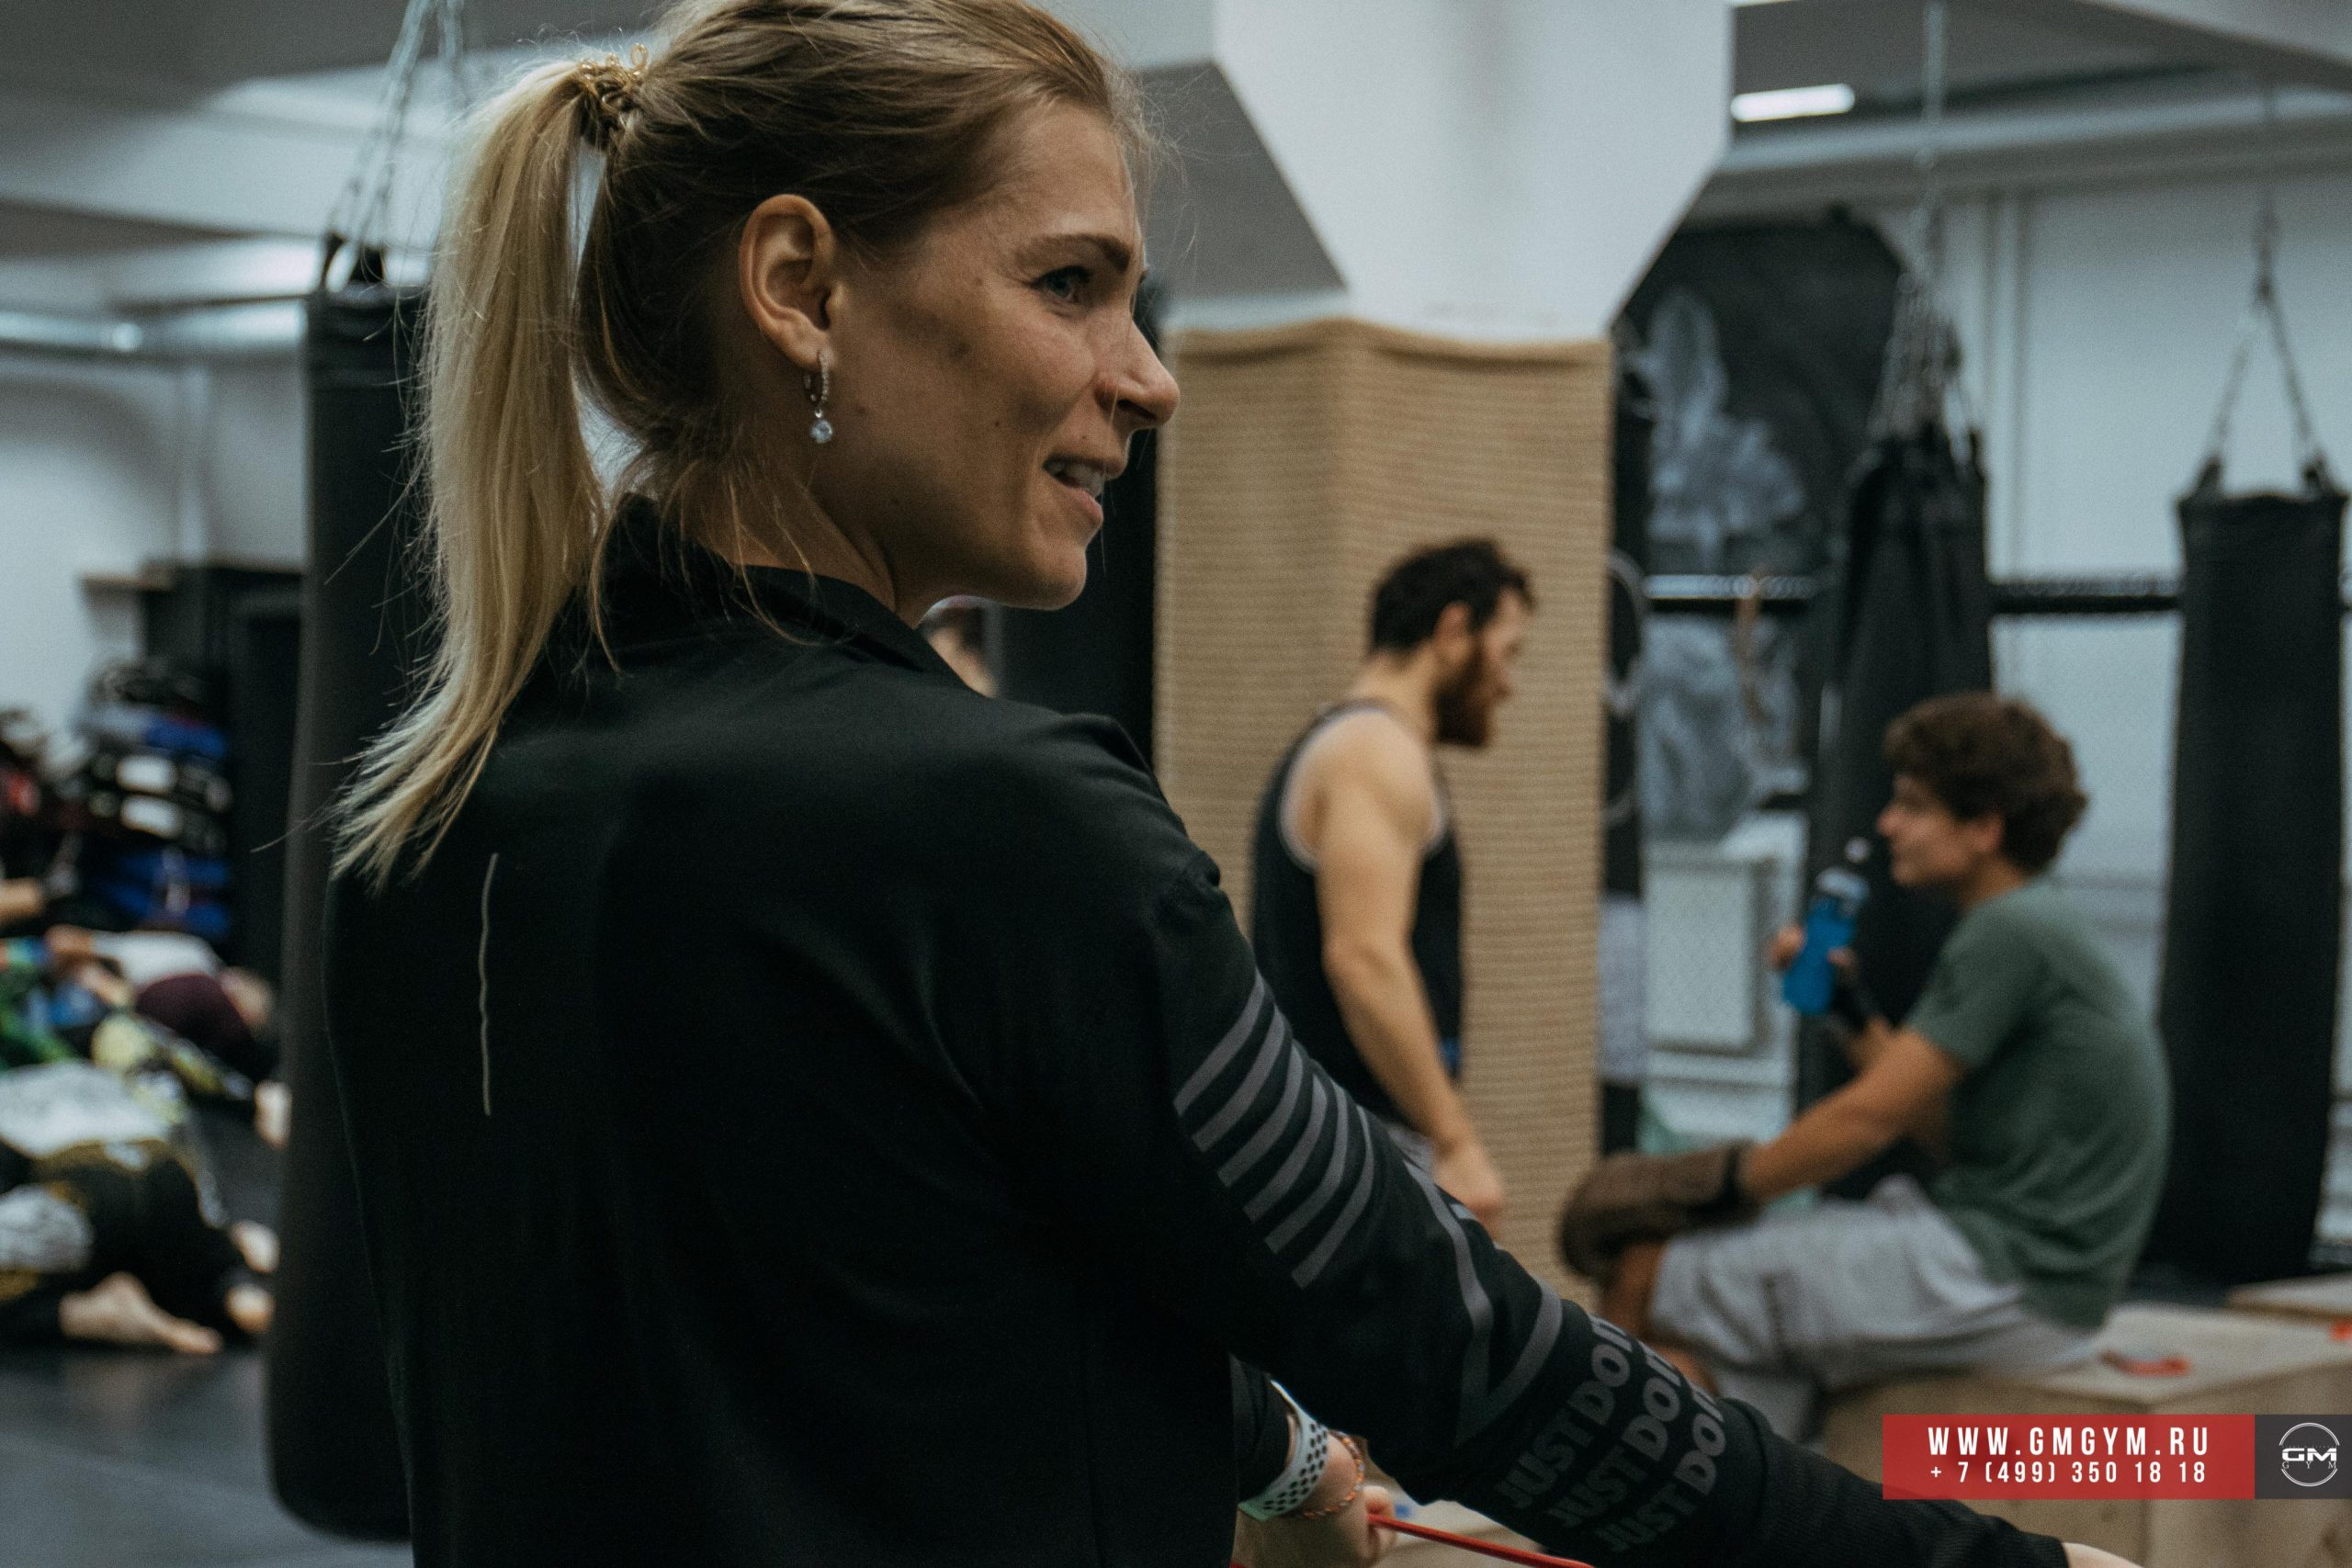 Crossfit Mobility 22